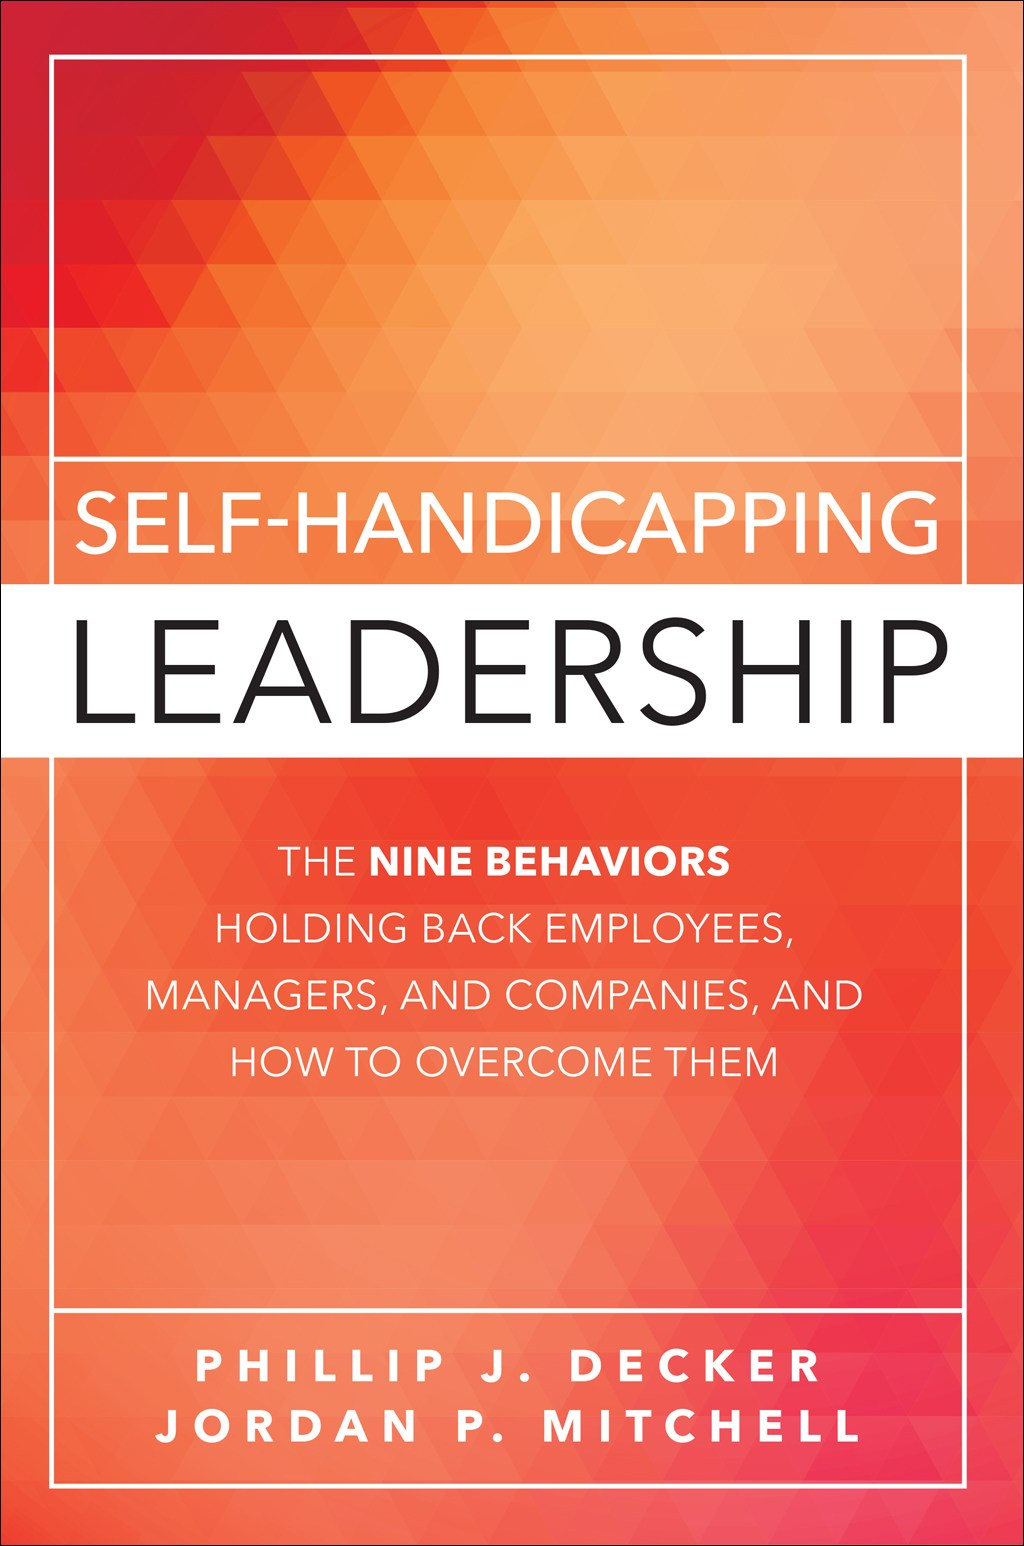 Self-Handicapping Leadership: The Nine Behaviors Holding Back Employees, Managers, and Companies, and How to Overcome Them